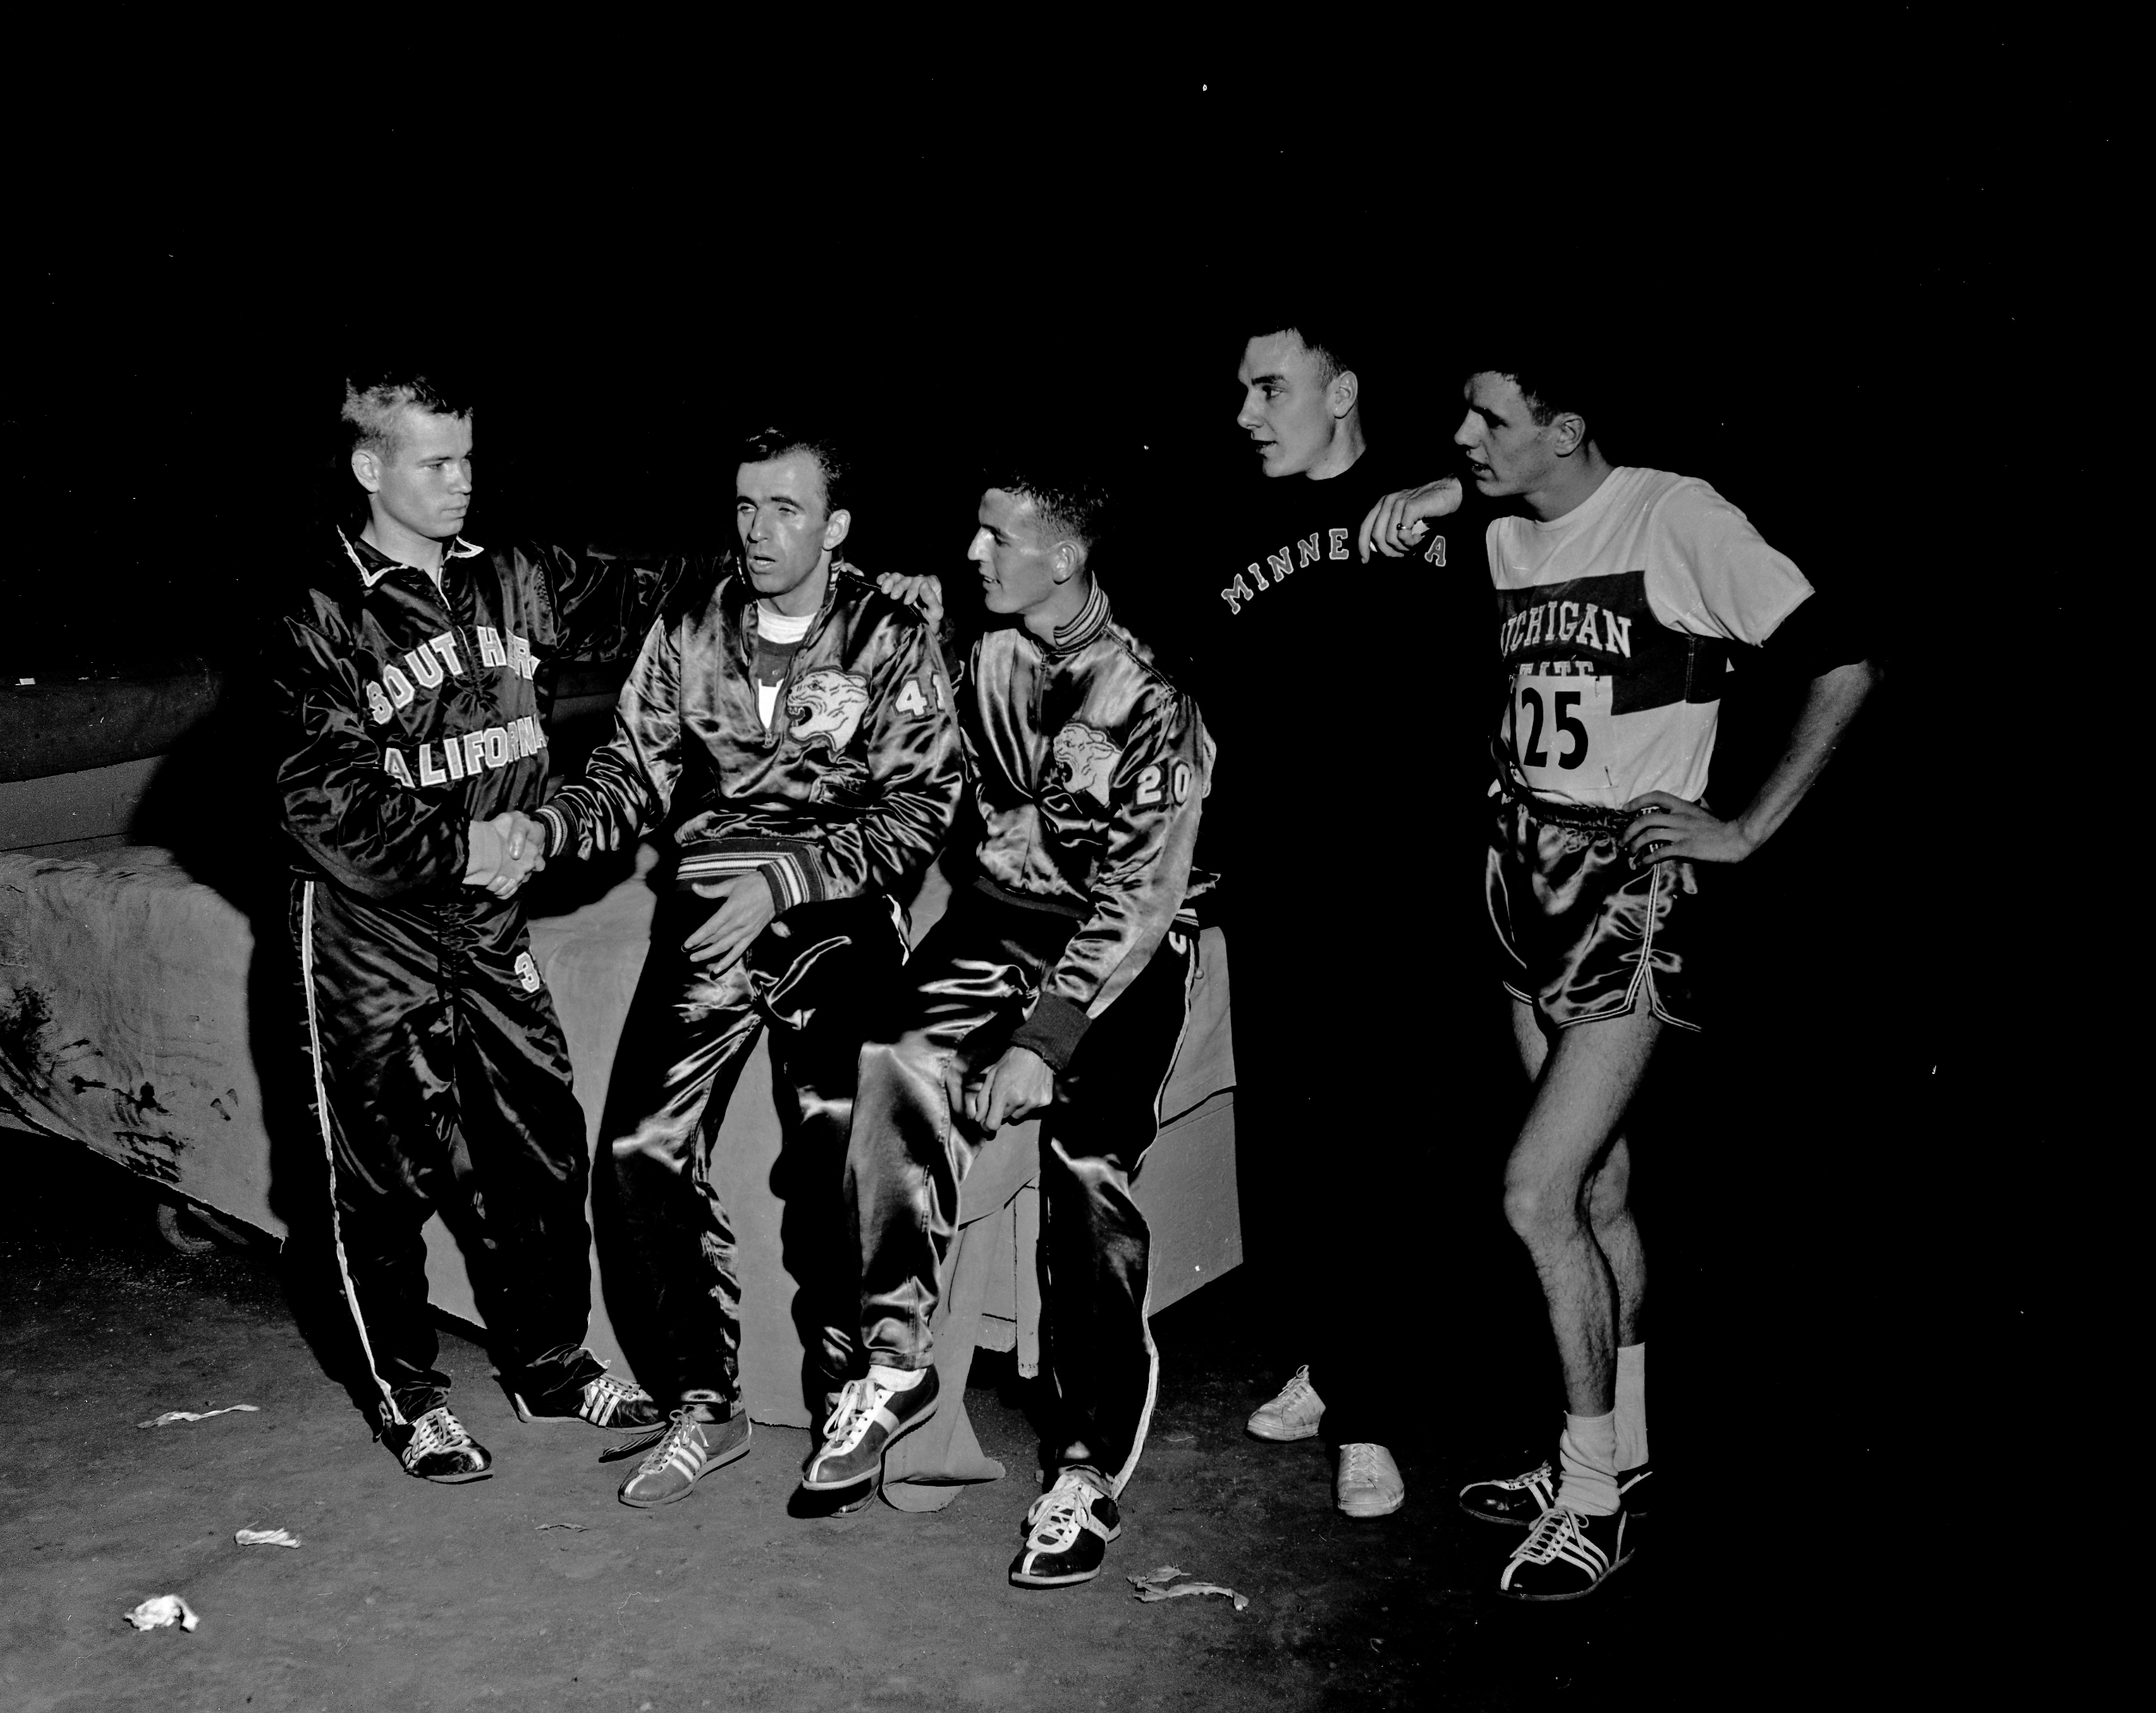 Cross Country runners after race, 1957